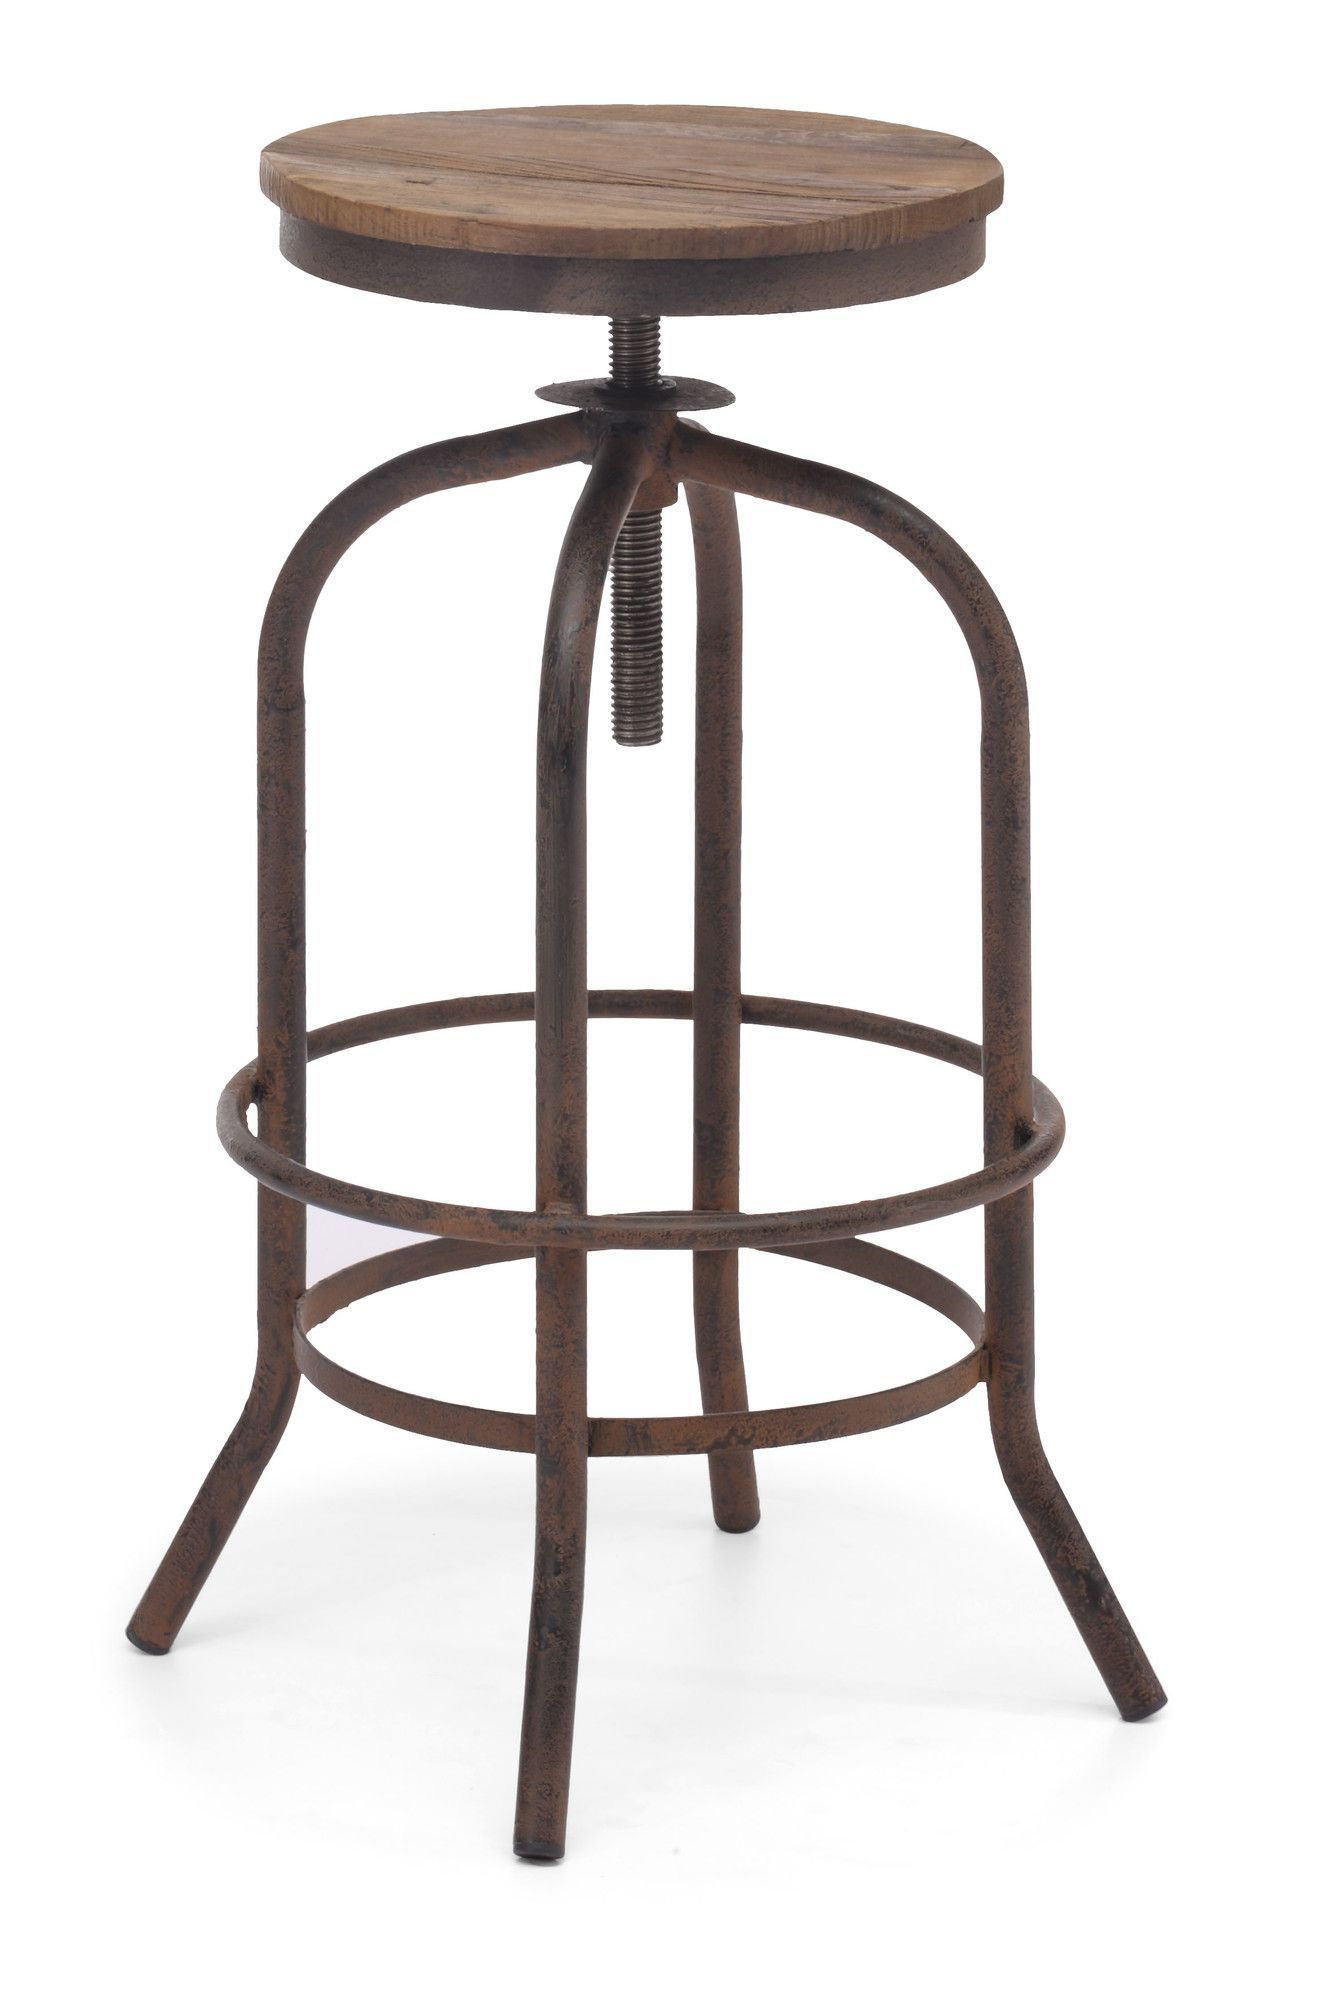 Unique Outdoor Bar Stools 34 Seat Height